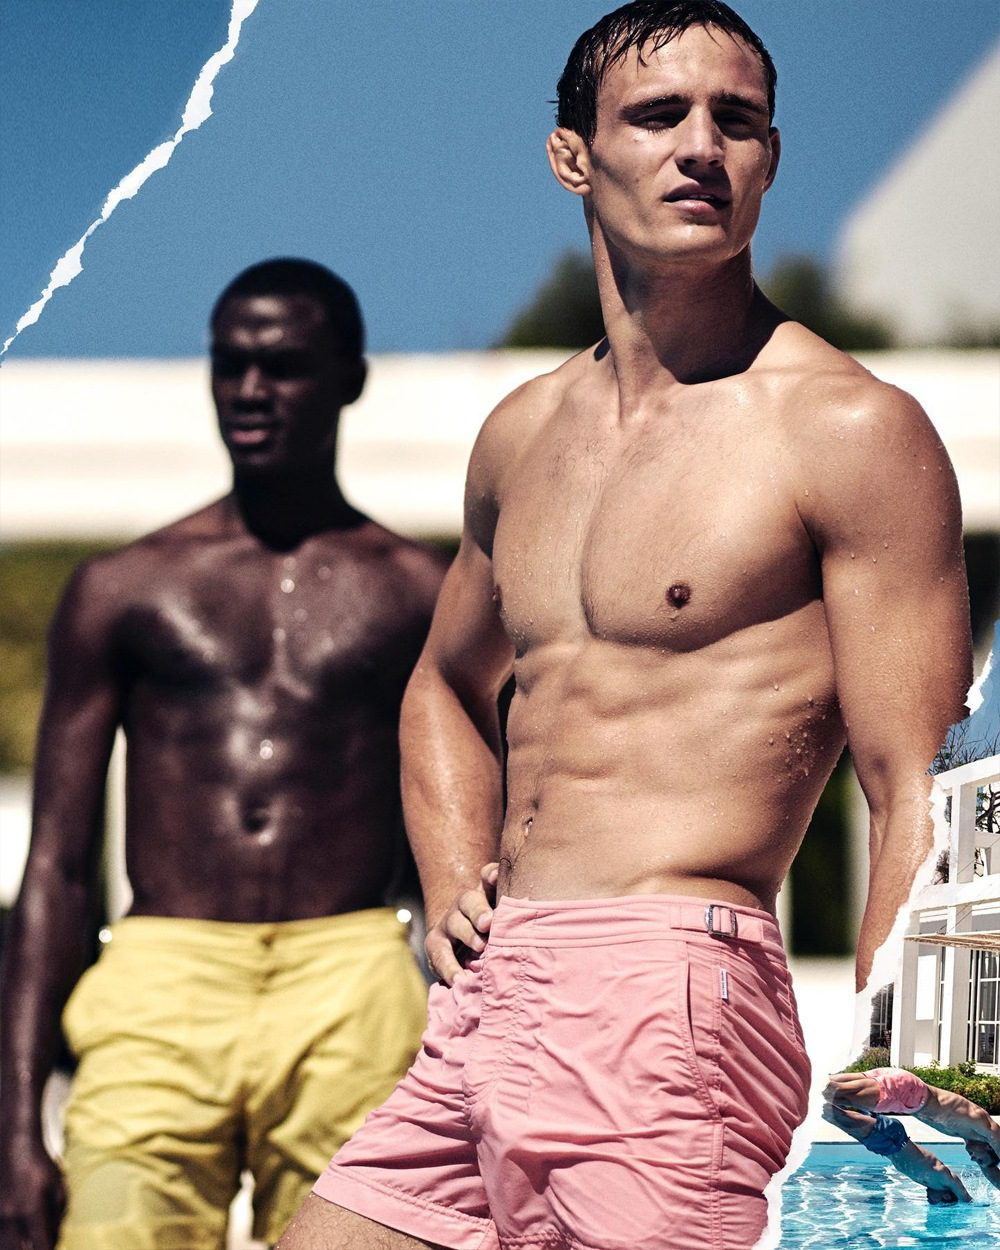 The Best Men's Swim Shorts Brands You Can Buy Today